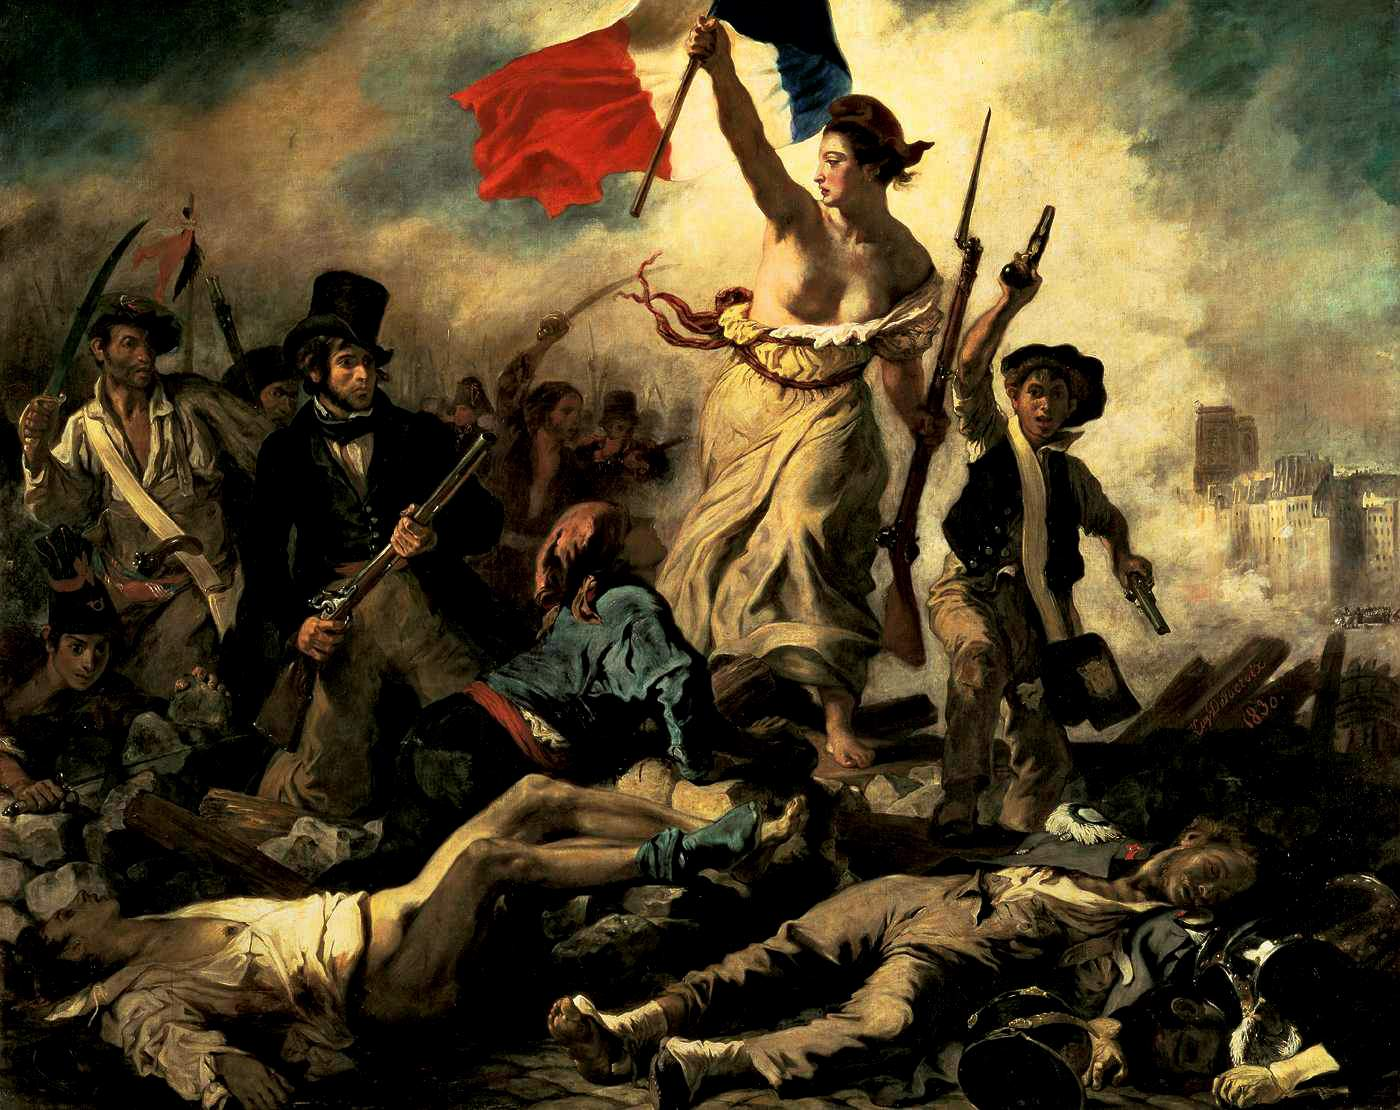 http://silverandexact.com/2012/02/03/liberty-leading-the-people-eugene-delacroix-1830/